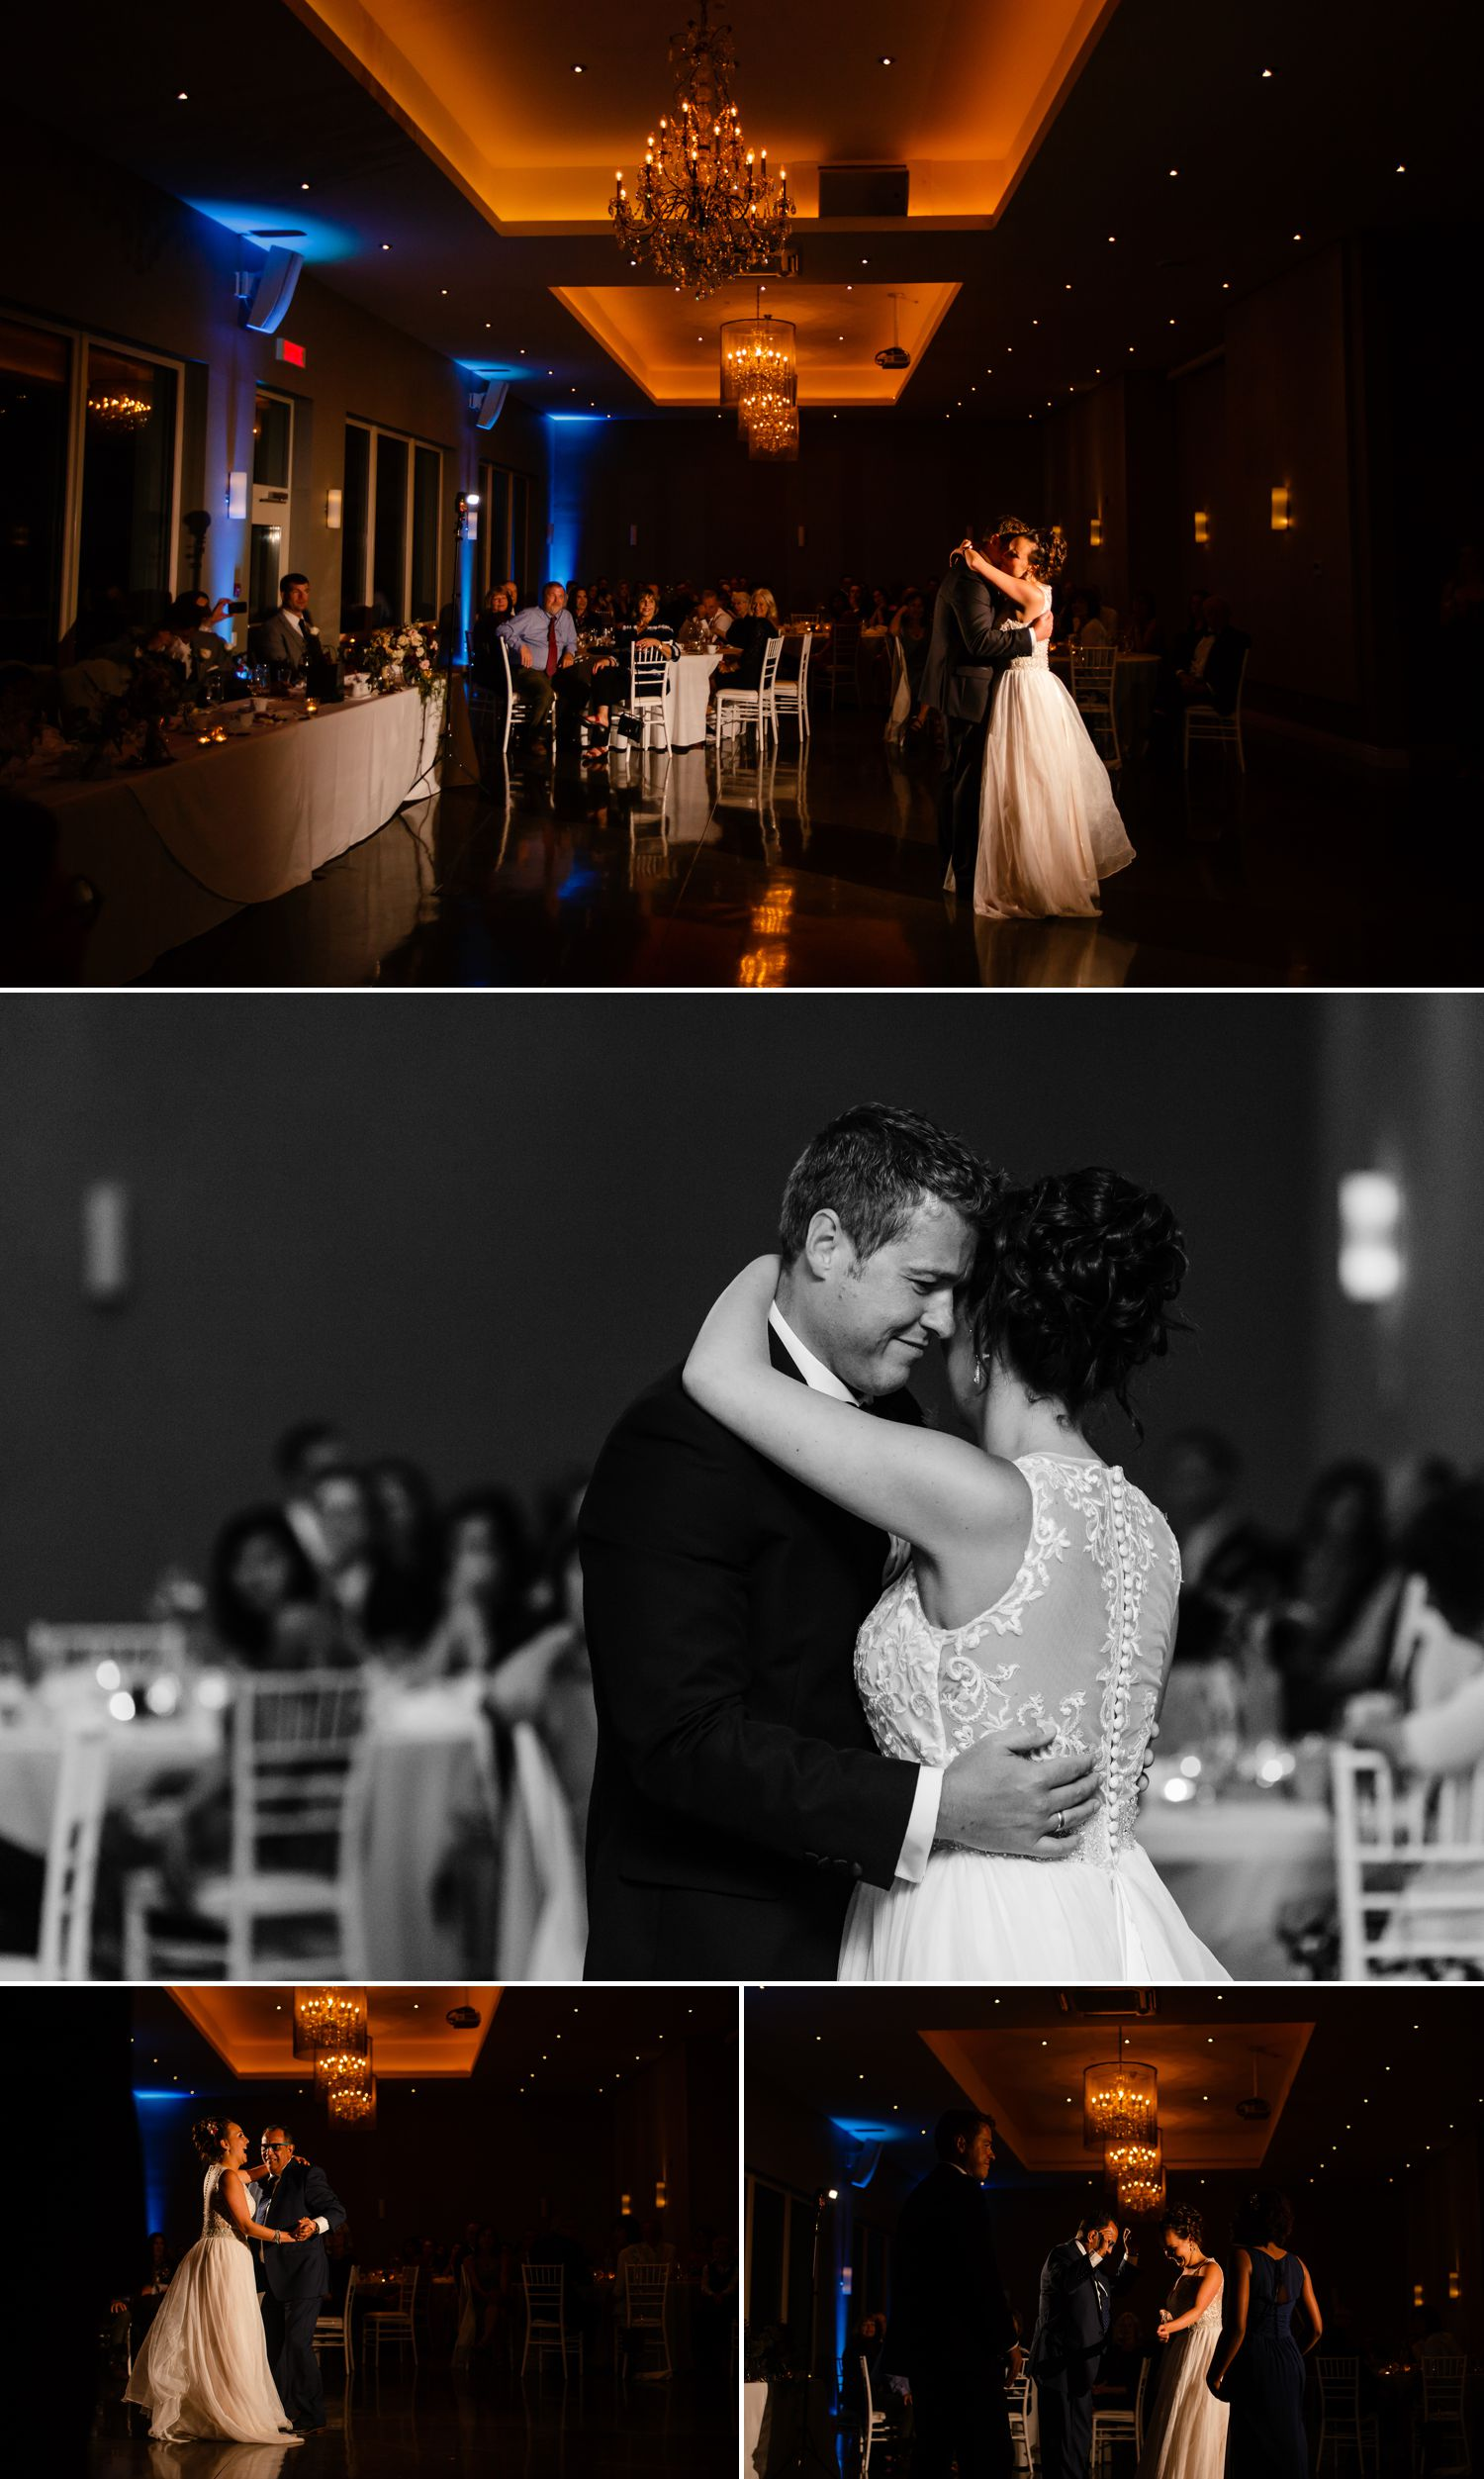 The bride and groom during their first dance at their wedding reception at Le Belvedere